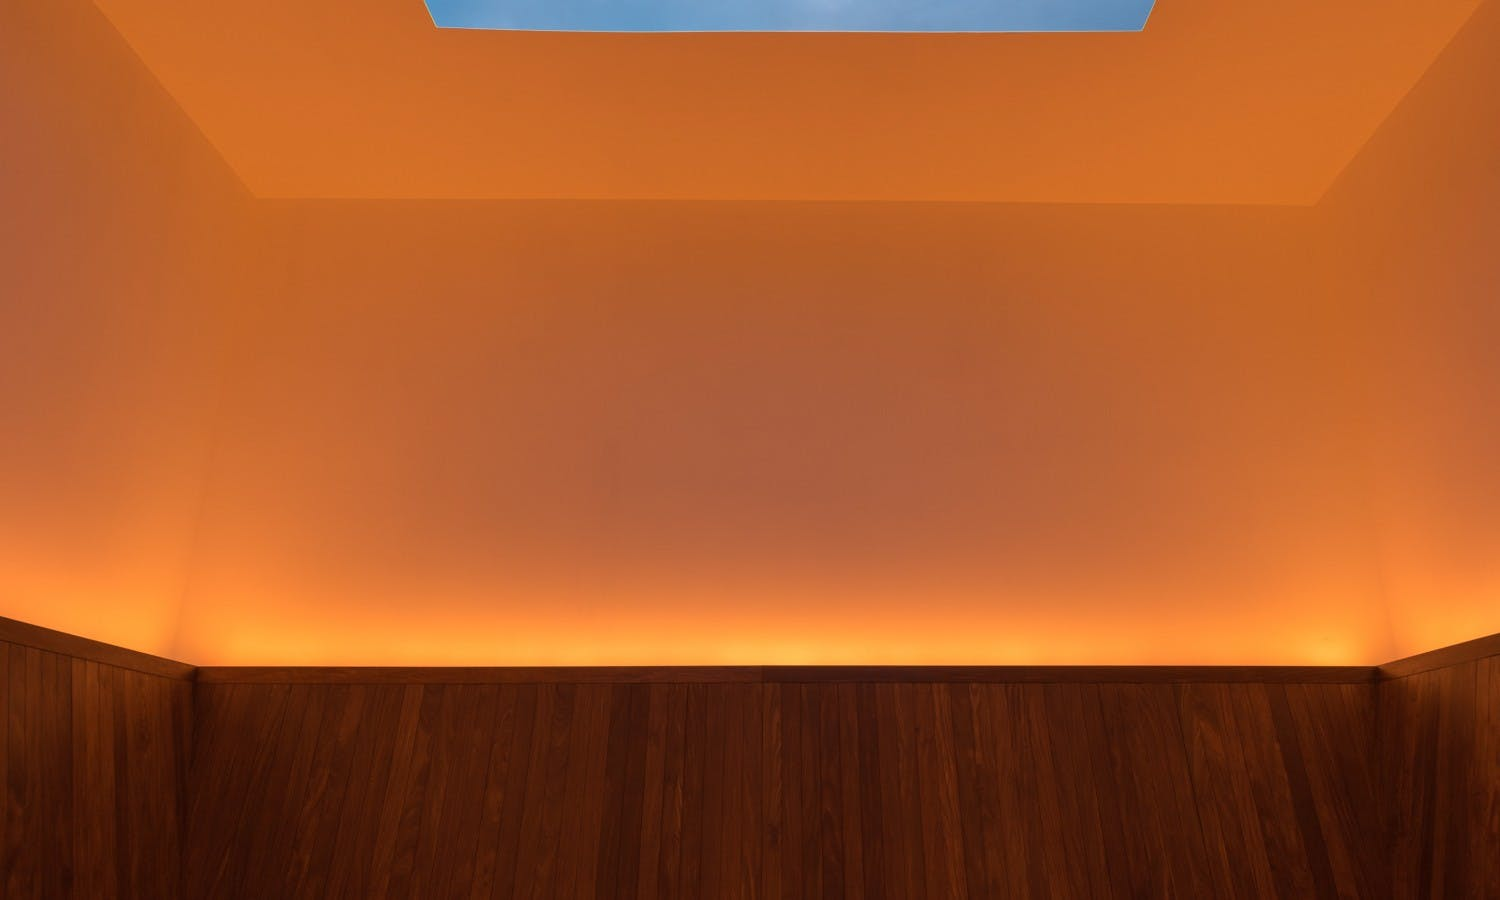 James Turrell's Meeting